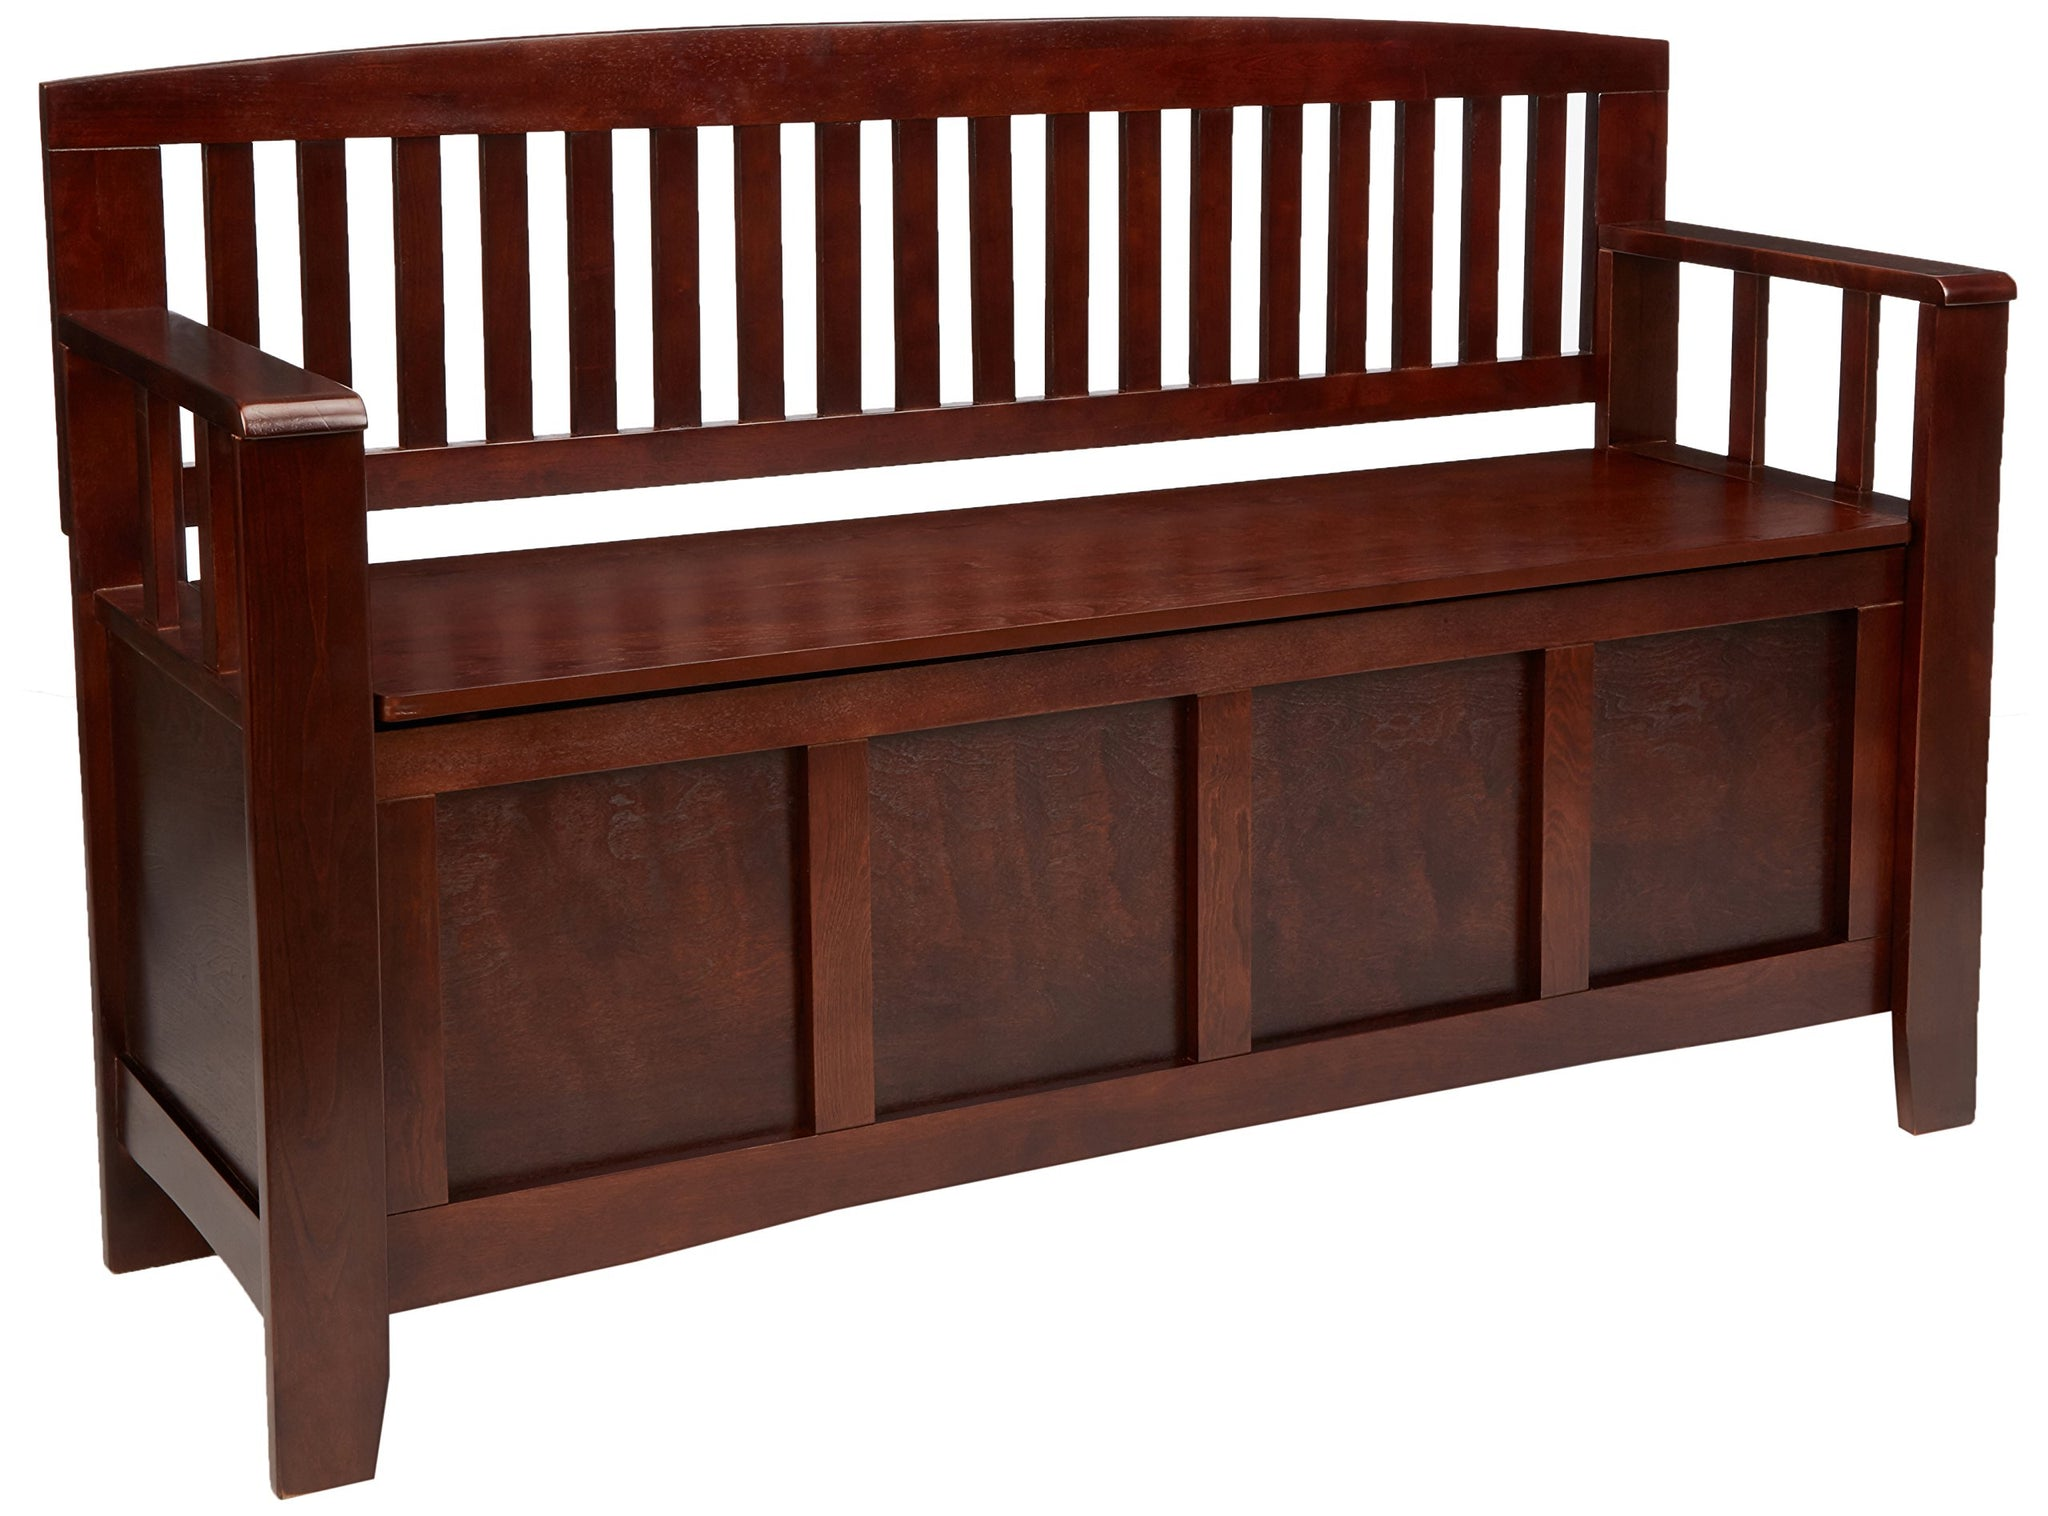 "Linon Home Dcor Linon Home Decor Cynthia Storage Bench, 50""w x 17.25""d x 32""h, Walnut"